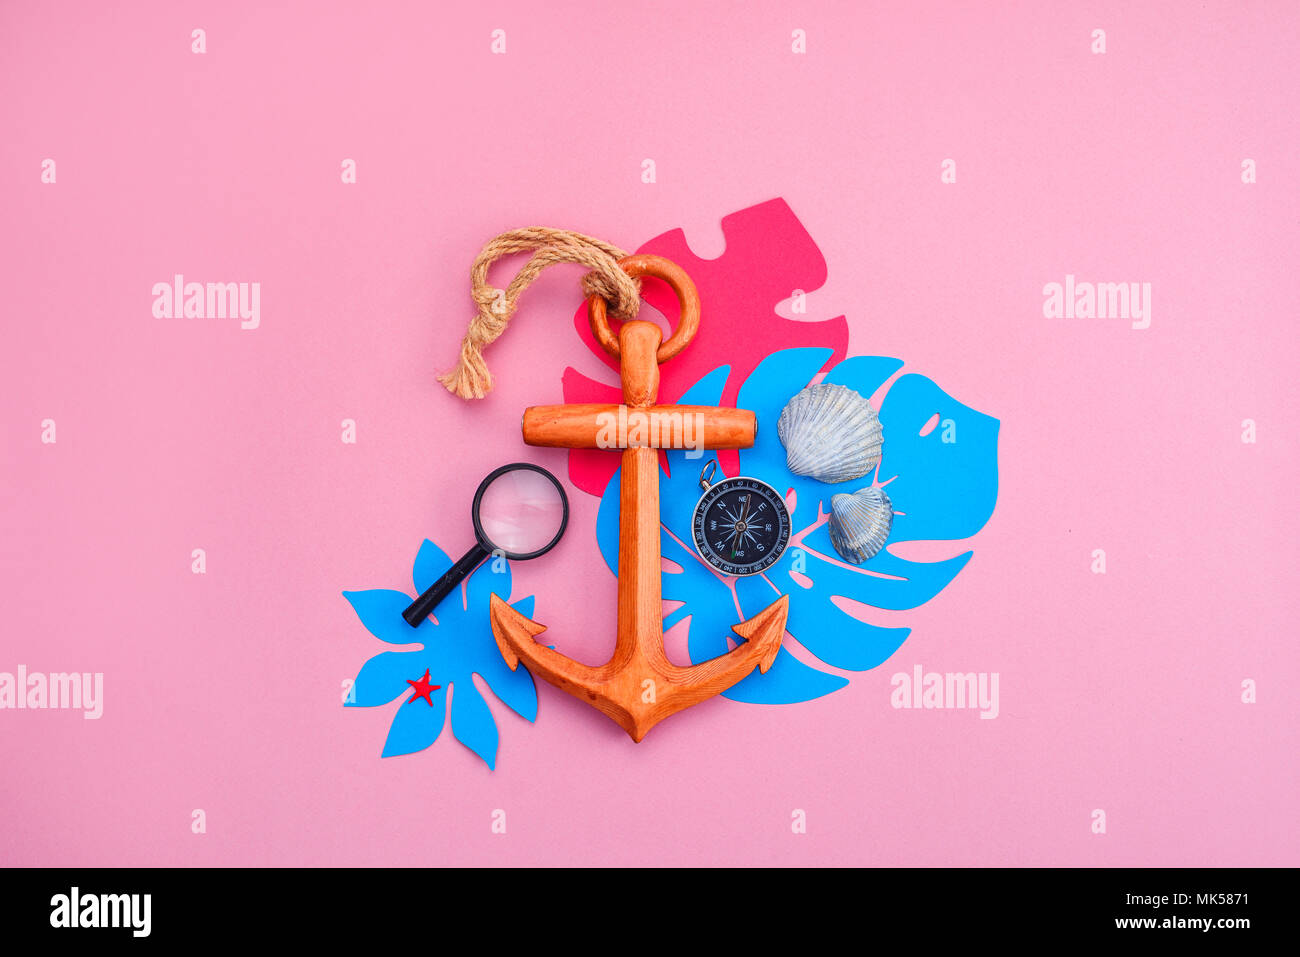 Colorful travel and vacation concept on a bright pink background. Tropical leaves, wooden anchor, compass and sea shells with copy space. - Stock Image